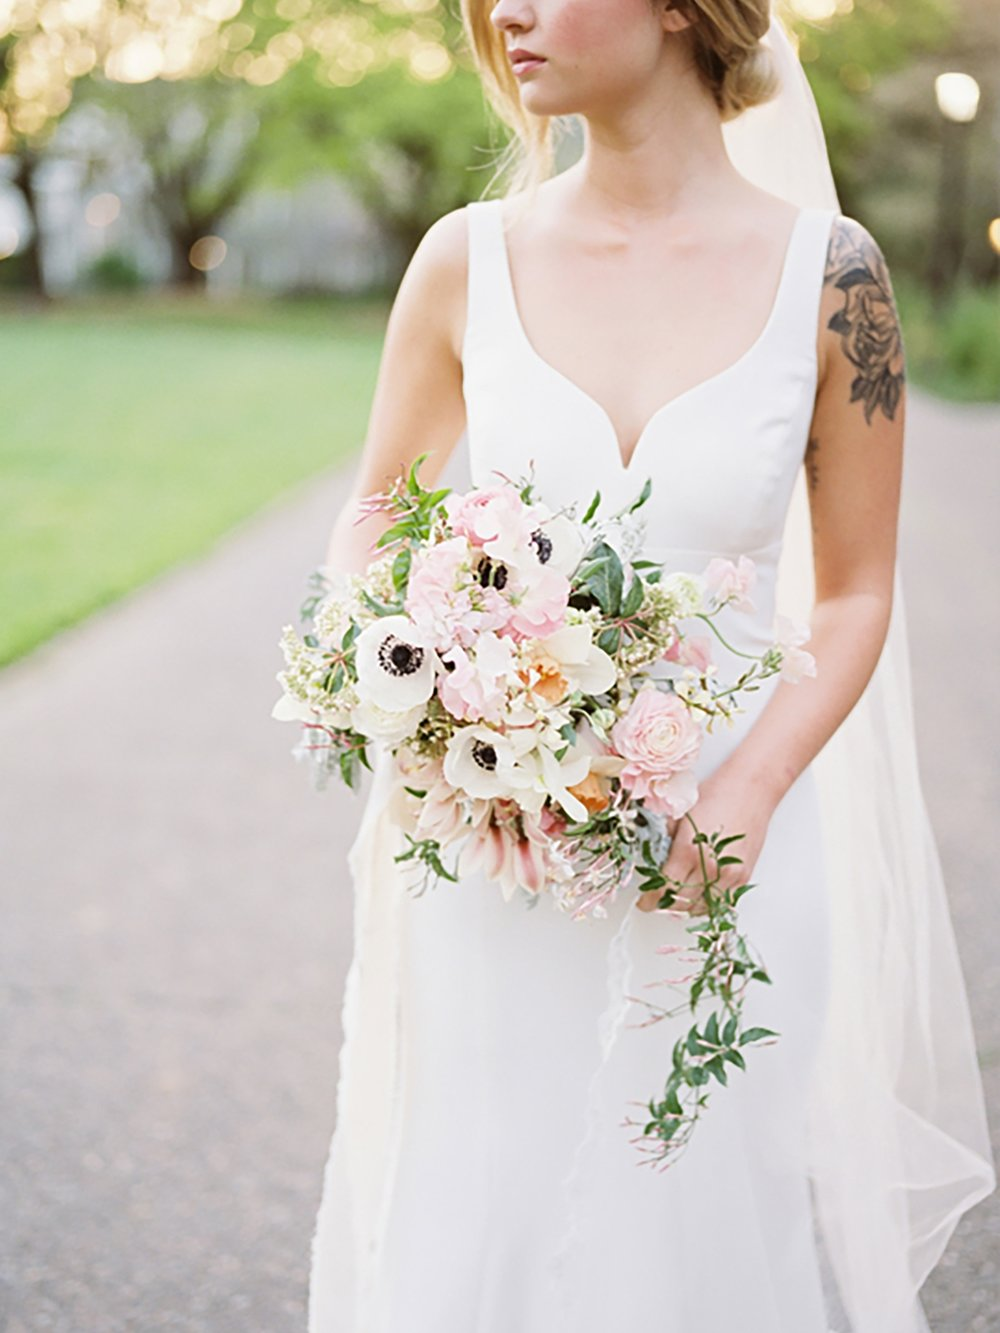 Jenni_Kupelian_Oregon_Wedding_Golden_Hour_Bridal_Portraits.jpg